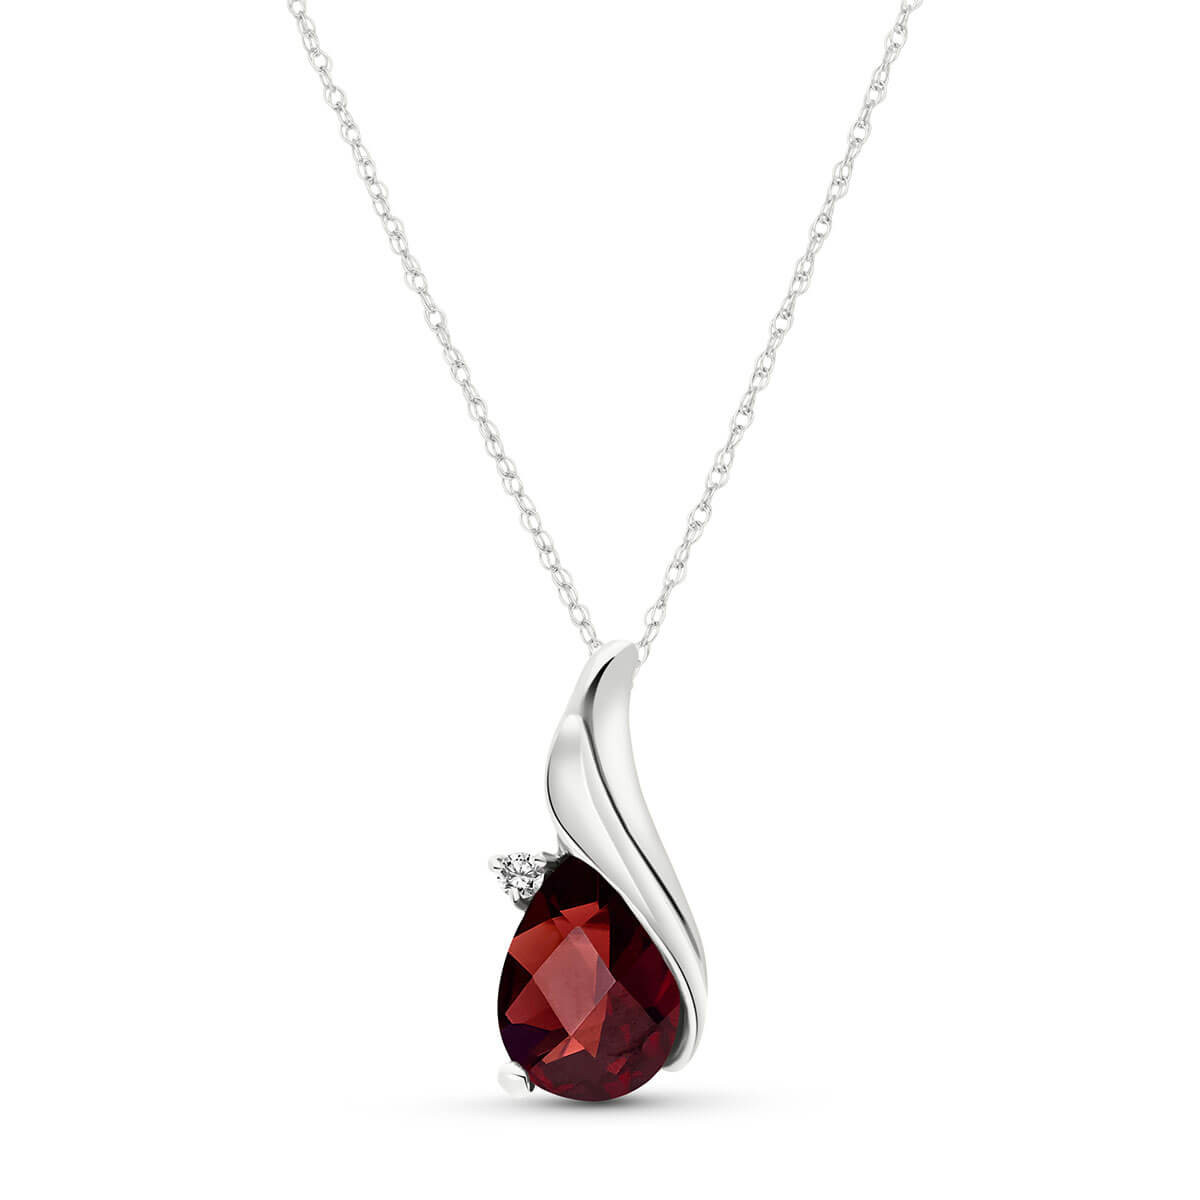 Pear Cut Garnet Pendant Necklace 2.03 ctw in 9ct White Gold